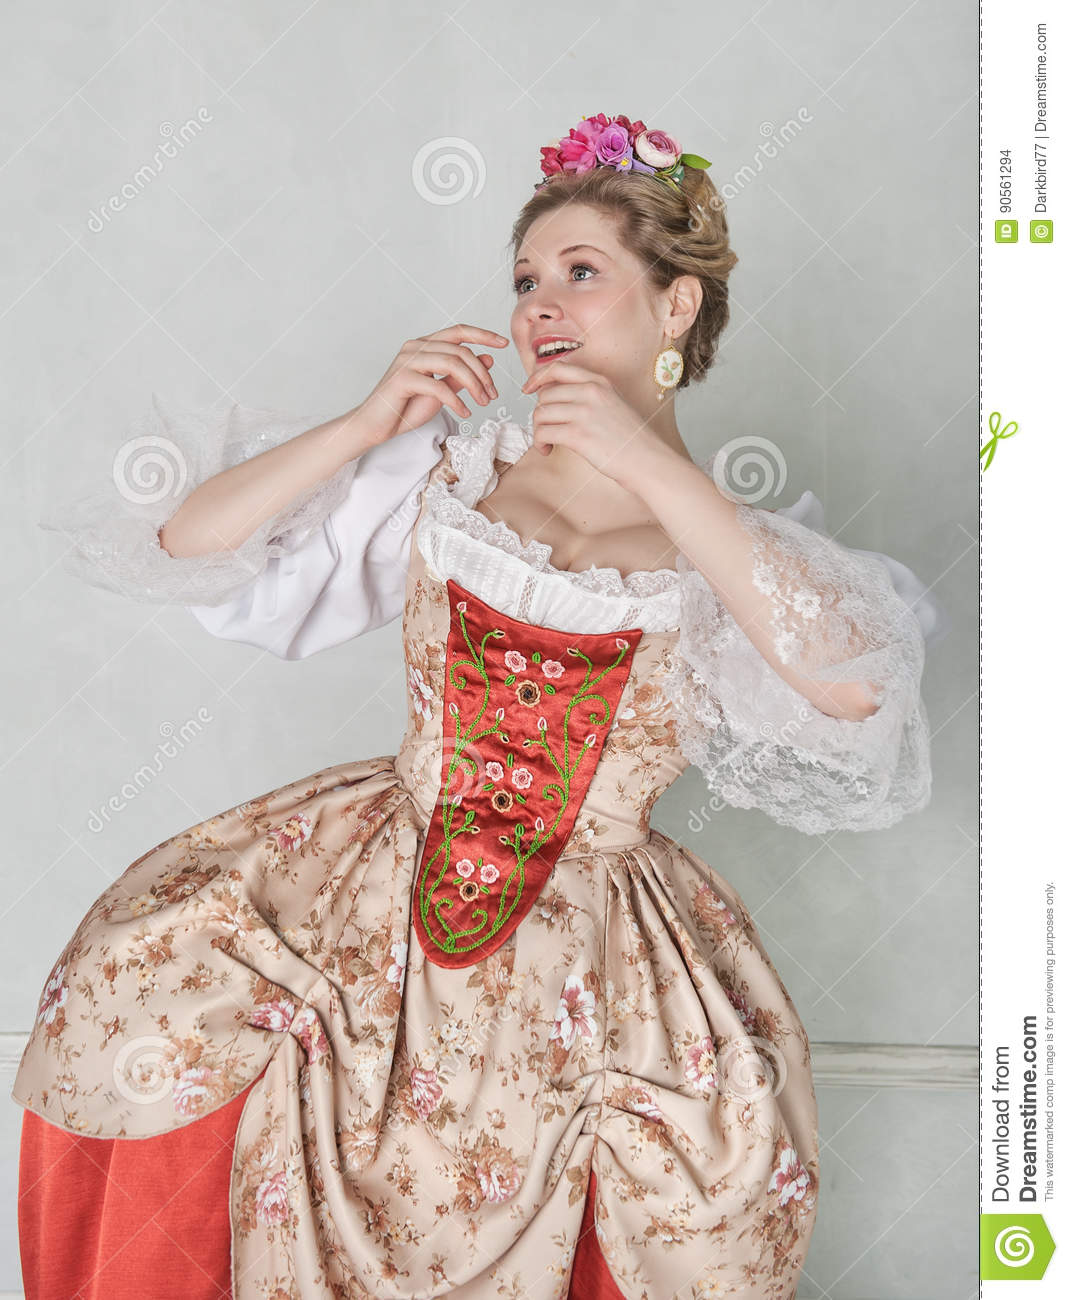 e382d7597d Beautiful Woman In Old-fashioned Historic Medieval Dress Stock Photo ...